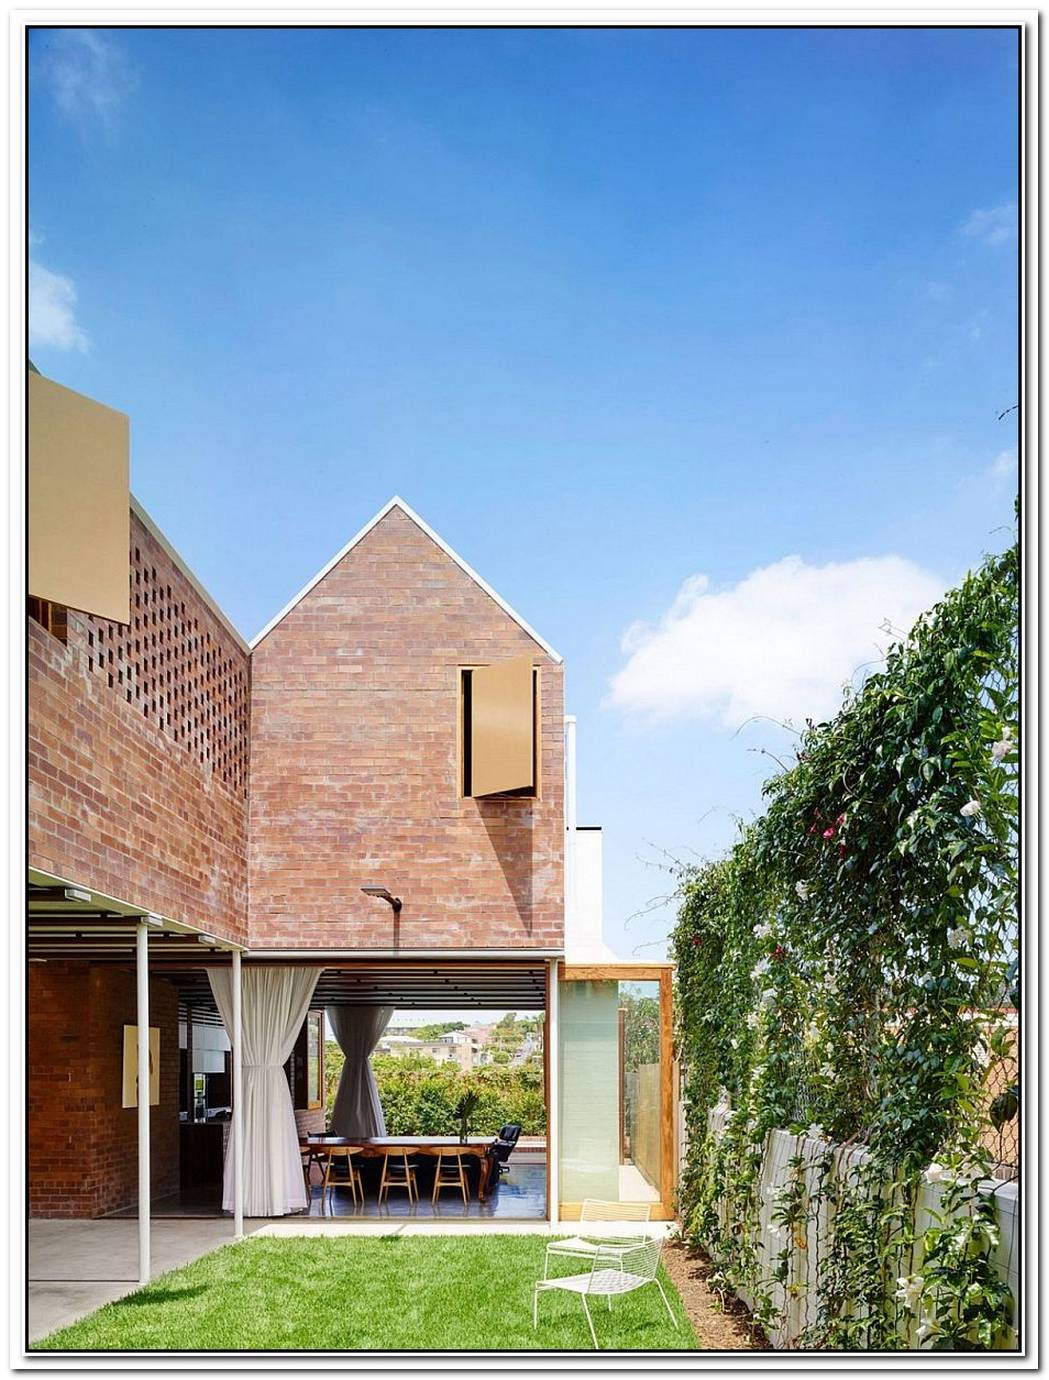 Christian Street HouseBrick Walls And High Gables For This Modern Home